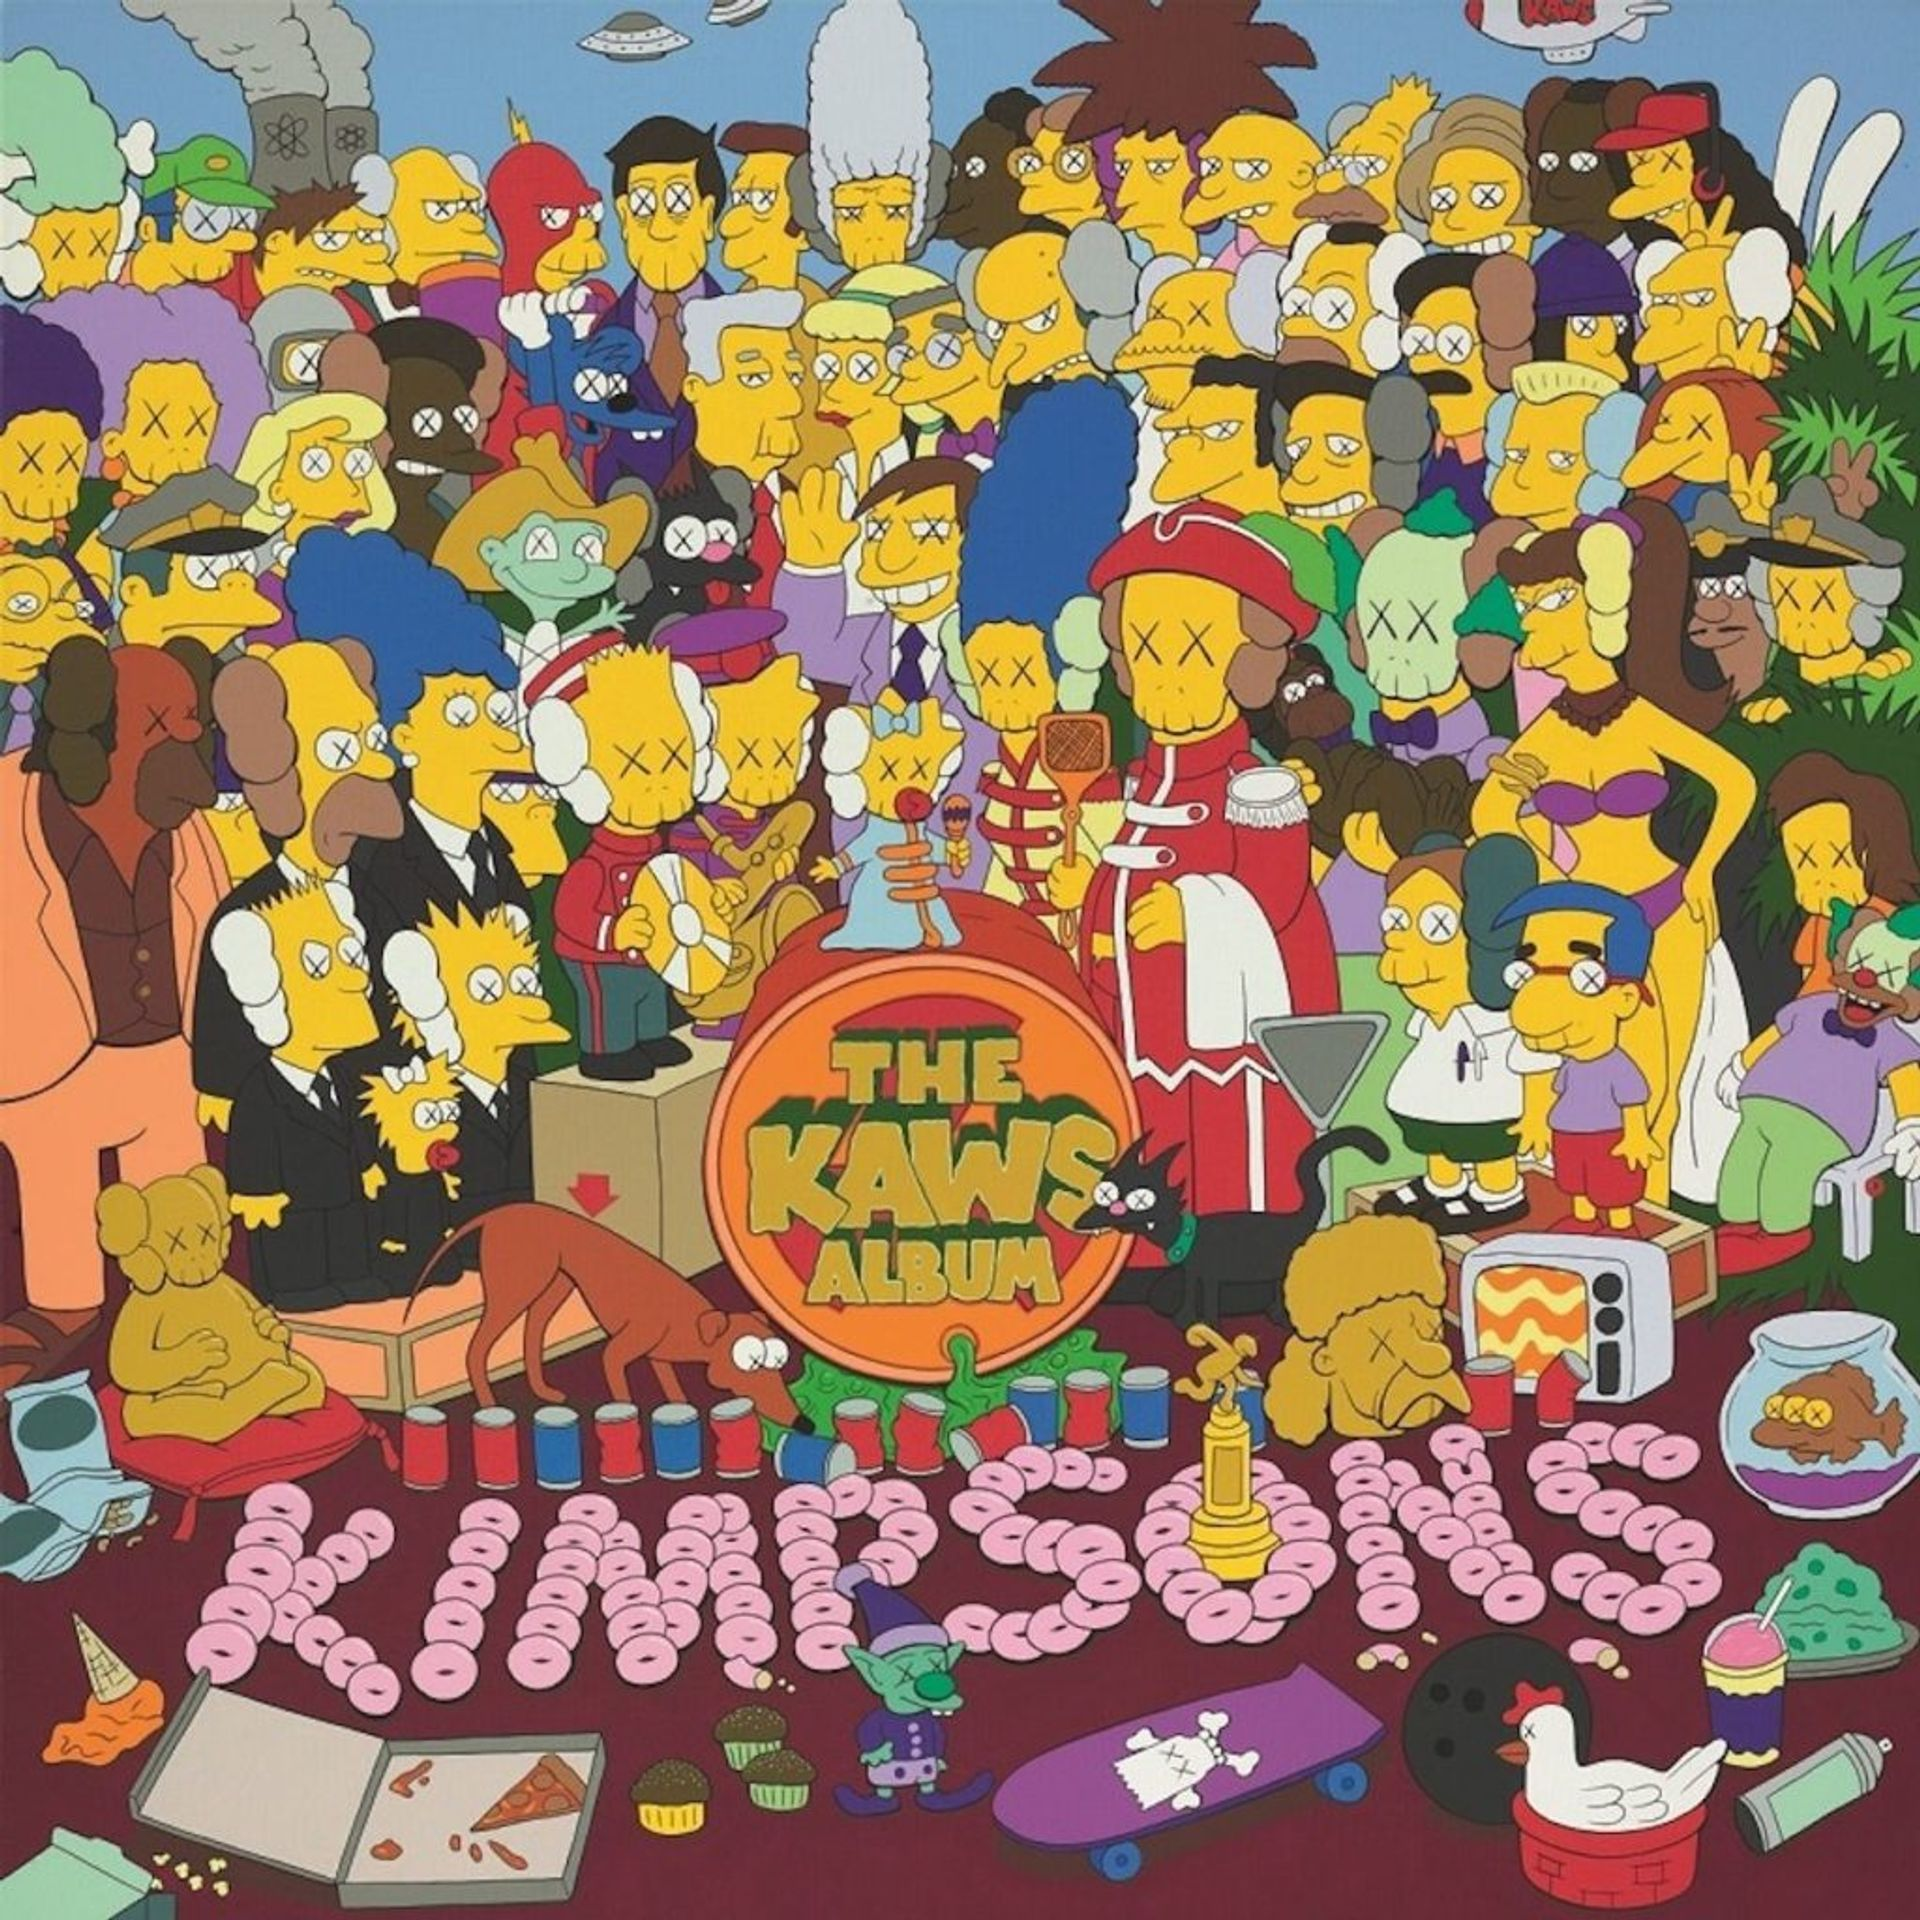 KAWS, the KAWS Album, sold for  $14.8m at Sotheby's Hong Kong Courtesy of Sotheby's